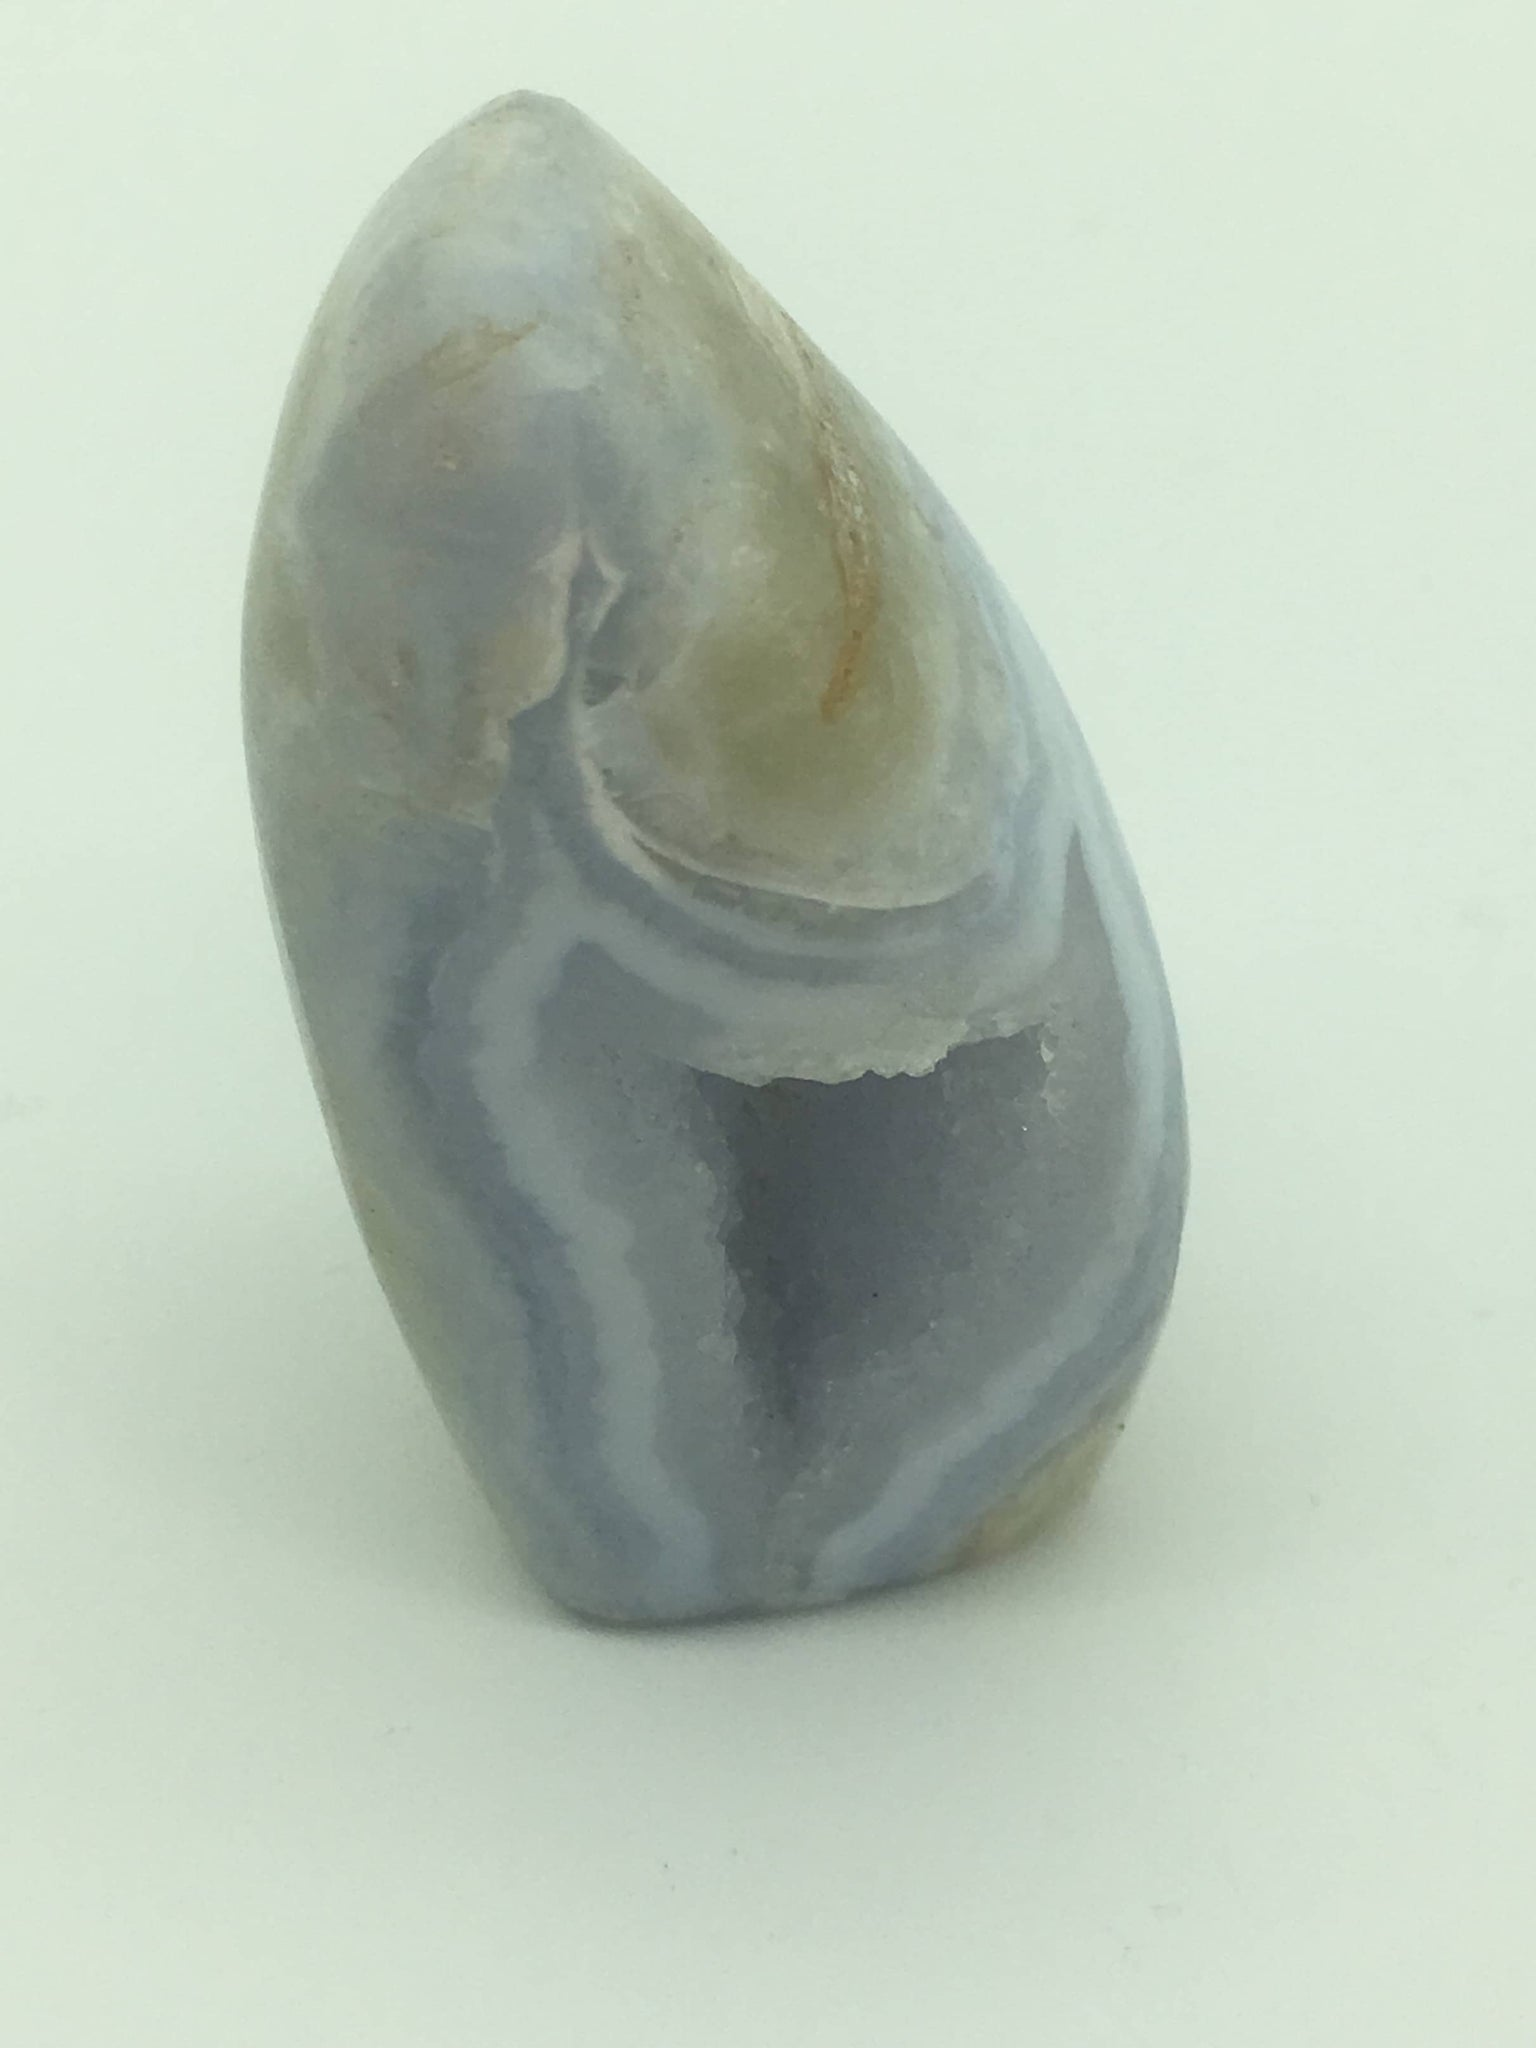 Blue lace agate - 101 Crystals